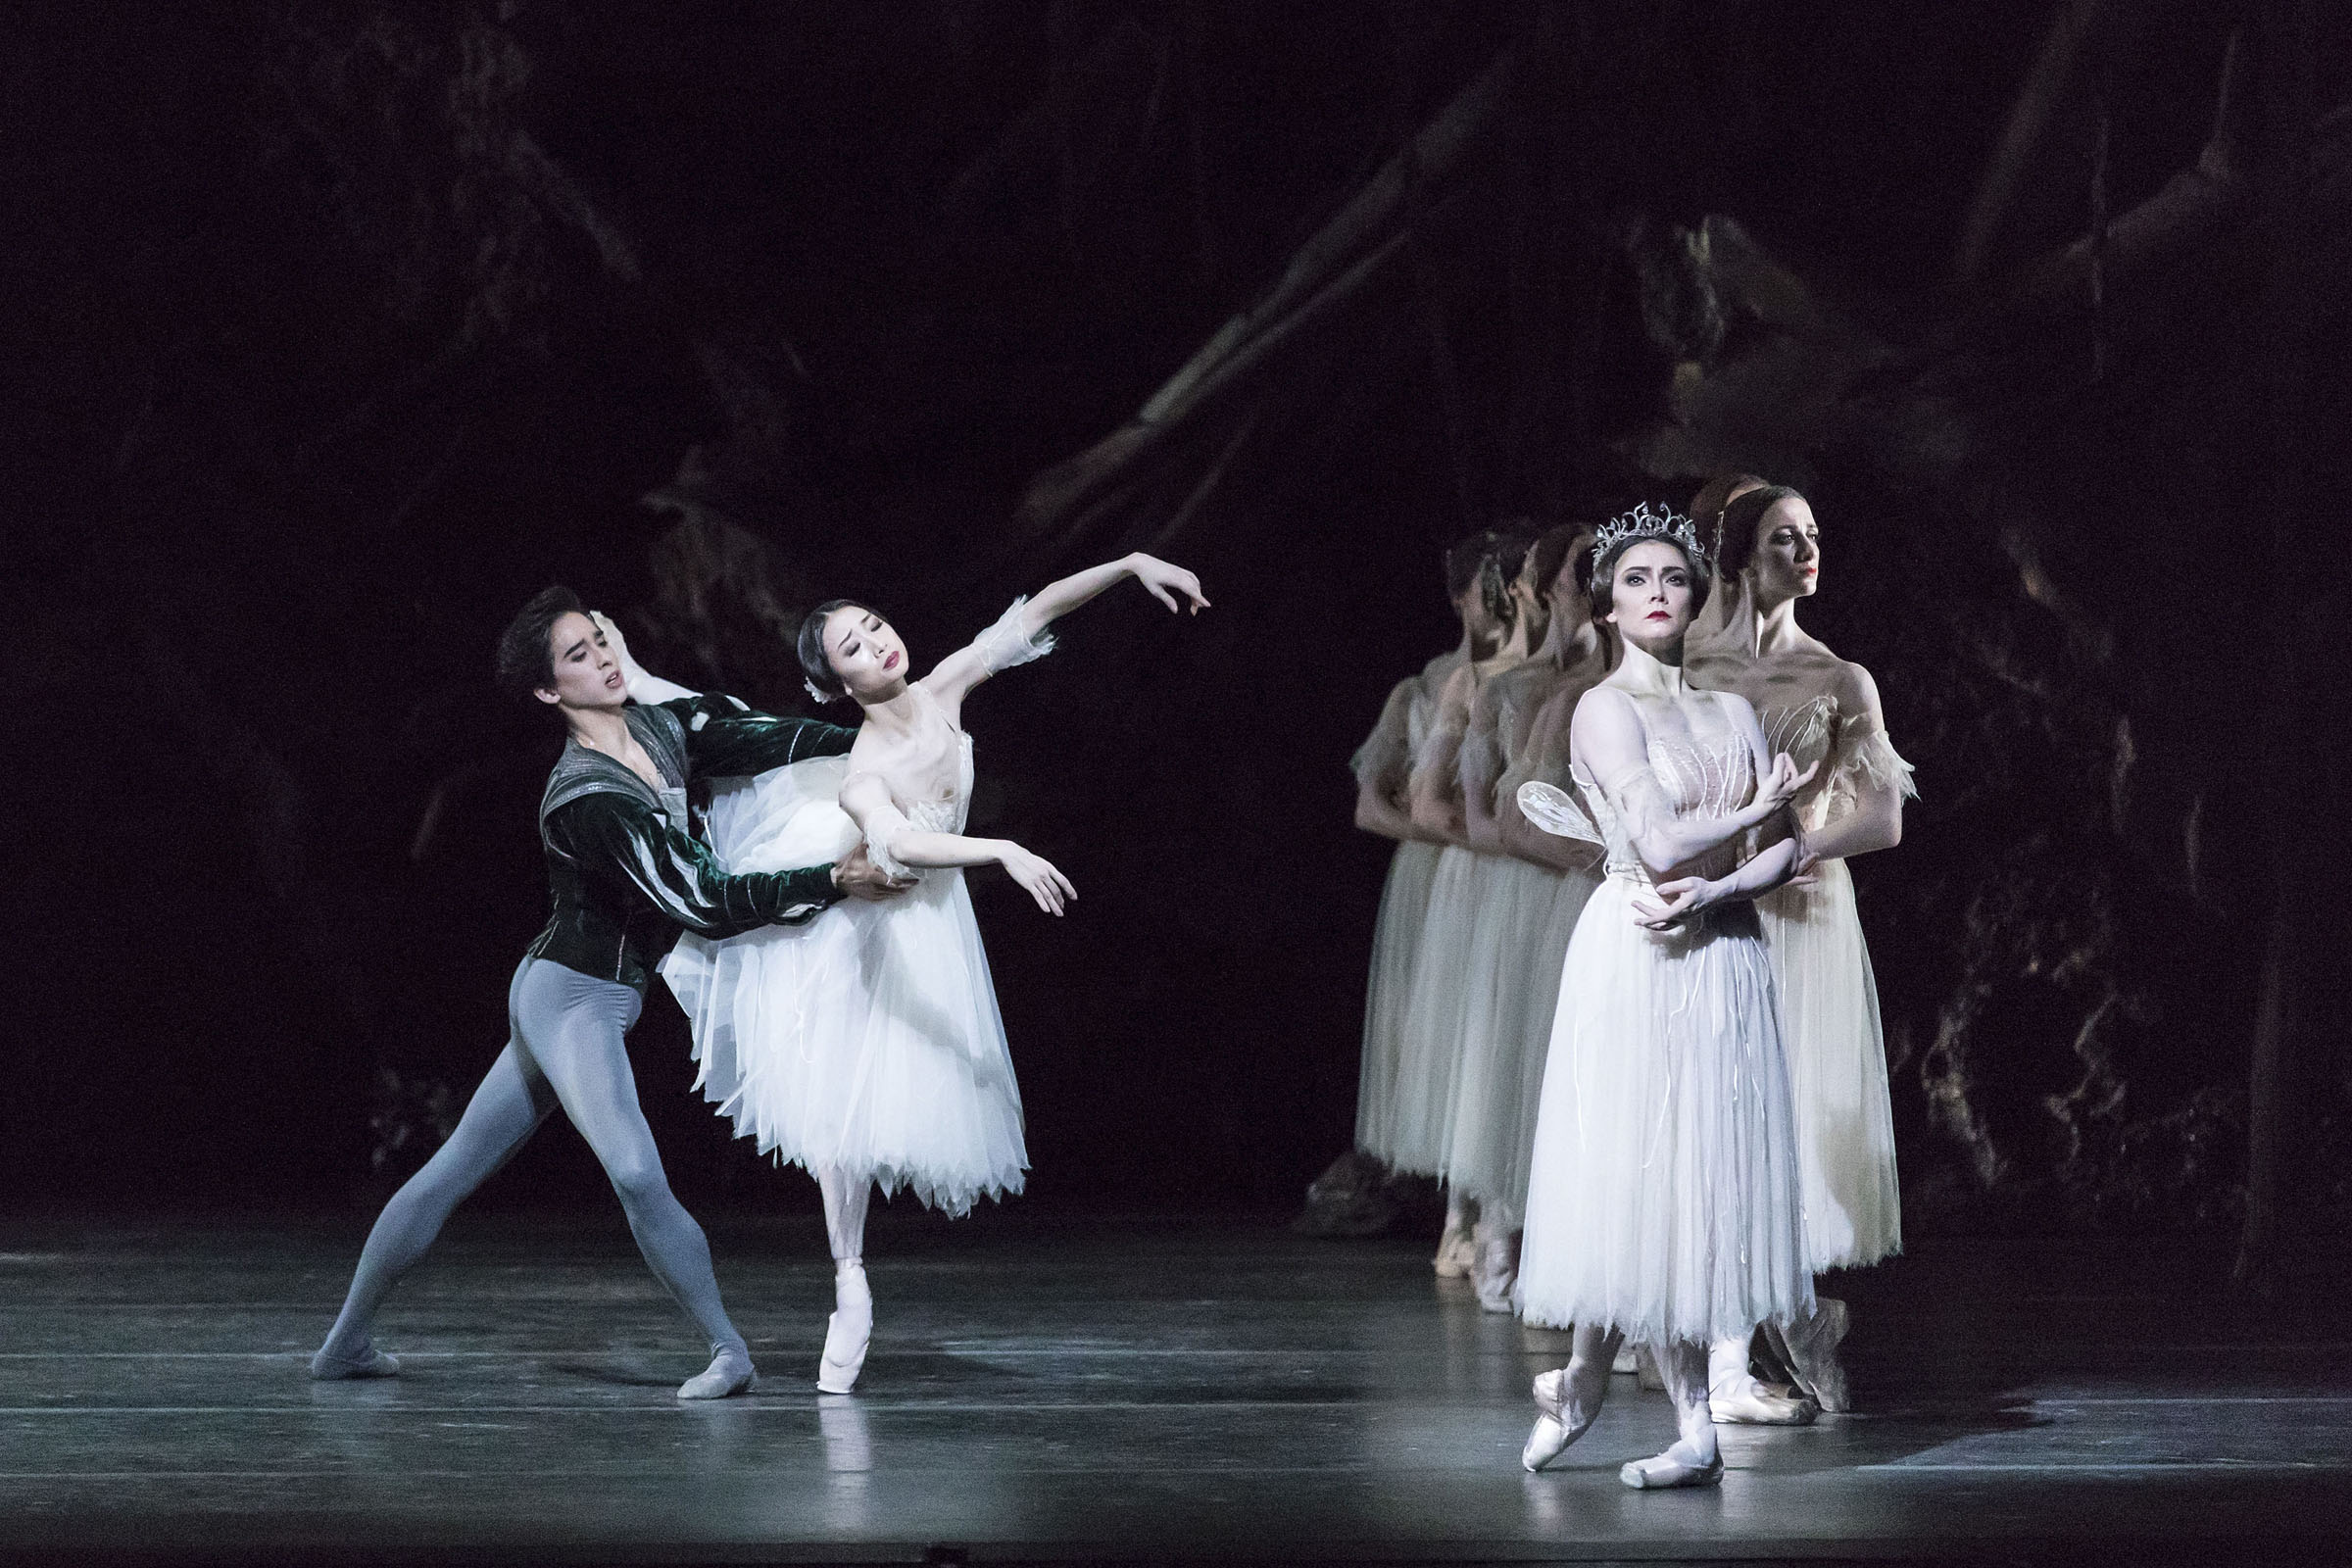 Benjamin Ella as Albrecht, Akane Takada as Giselle, Claire Calvert as Queen of the Wilis